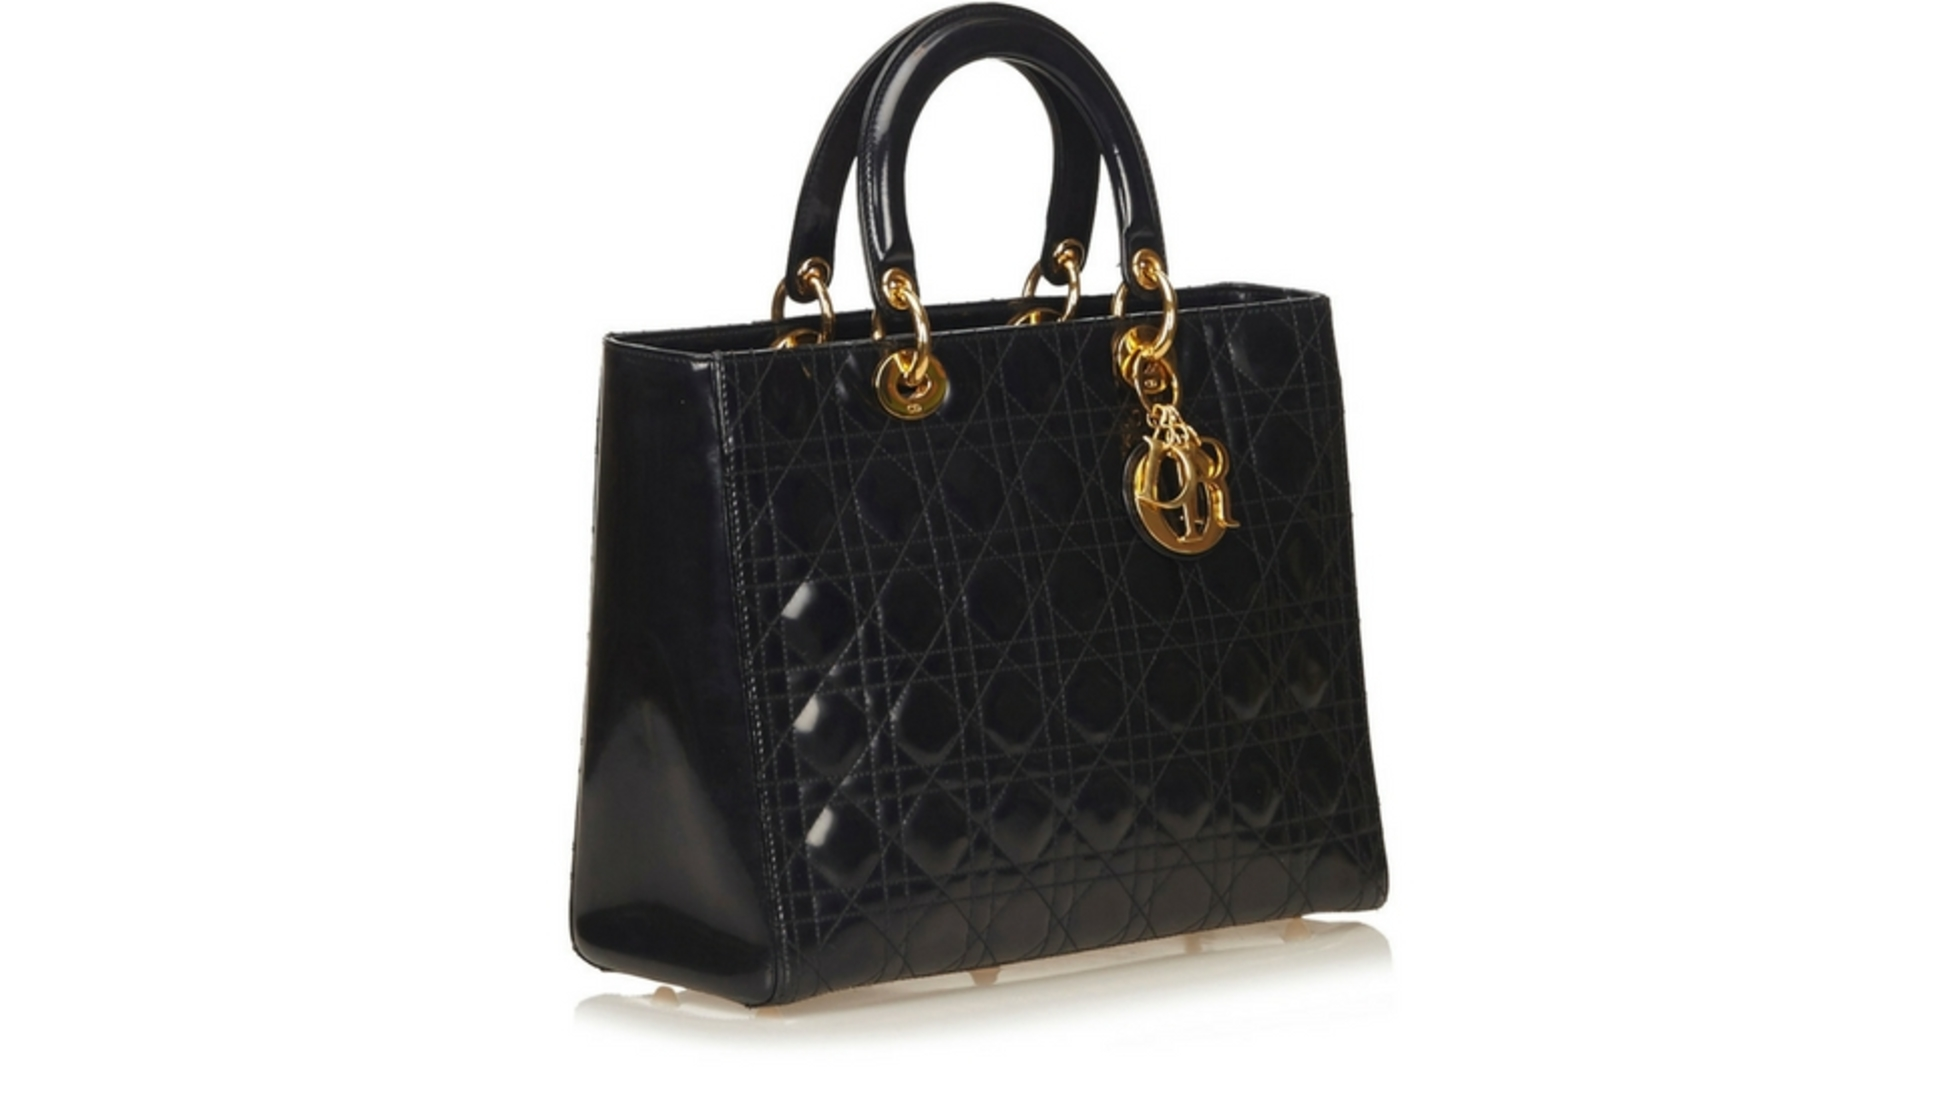 f5a90e240cacc Why the Lady Dior Bag is a Good Investment - Catawiki